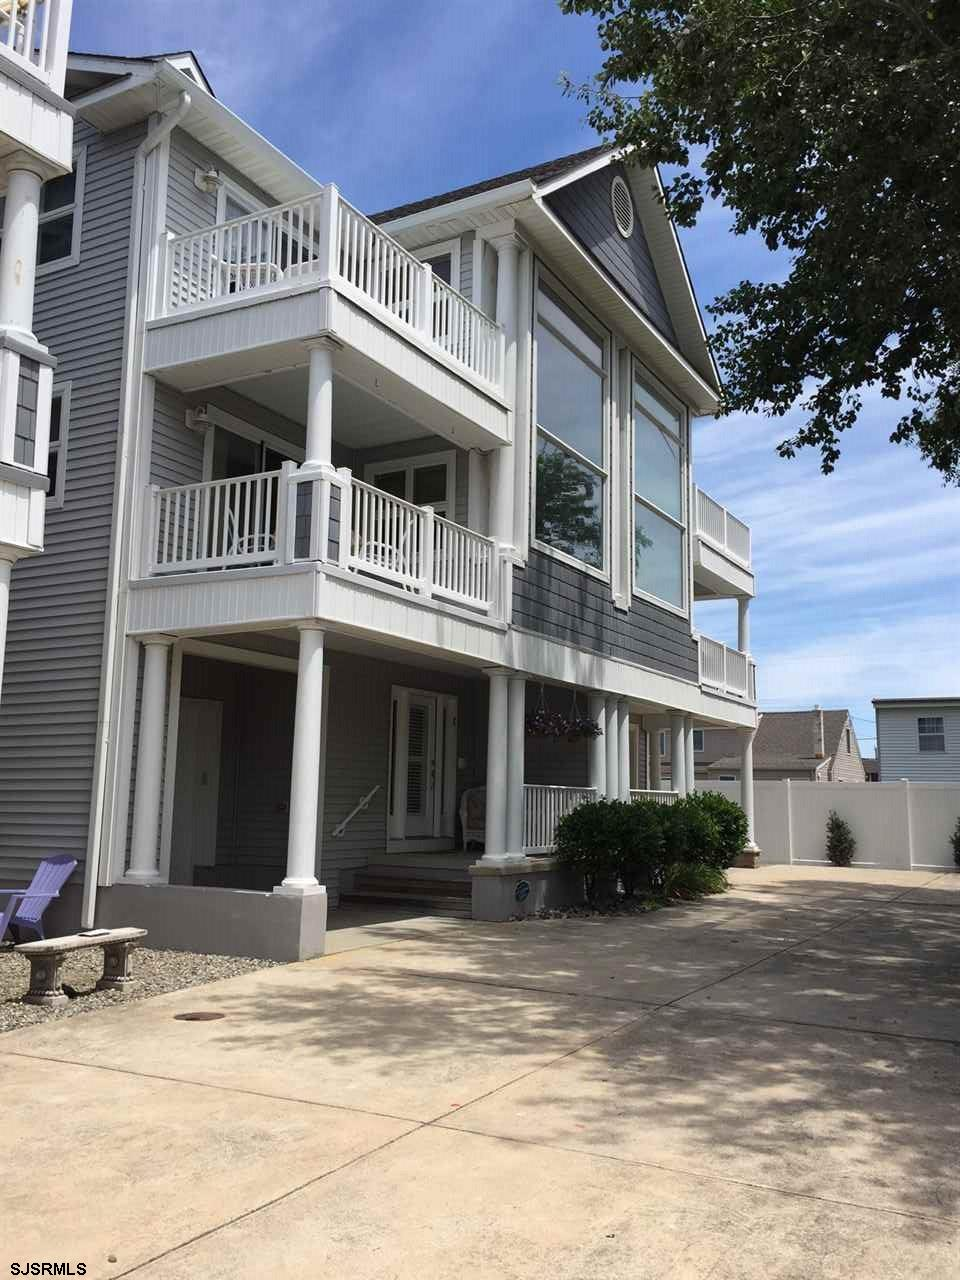 23 S Coolidge Unit C Ave, Margate, NJ 08402